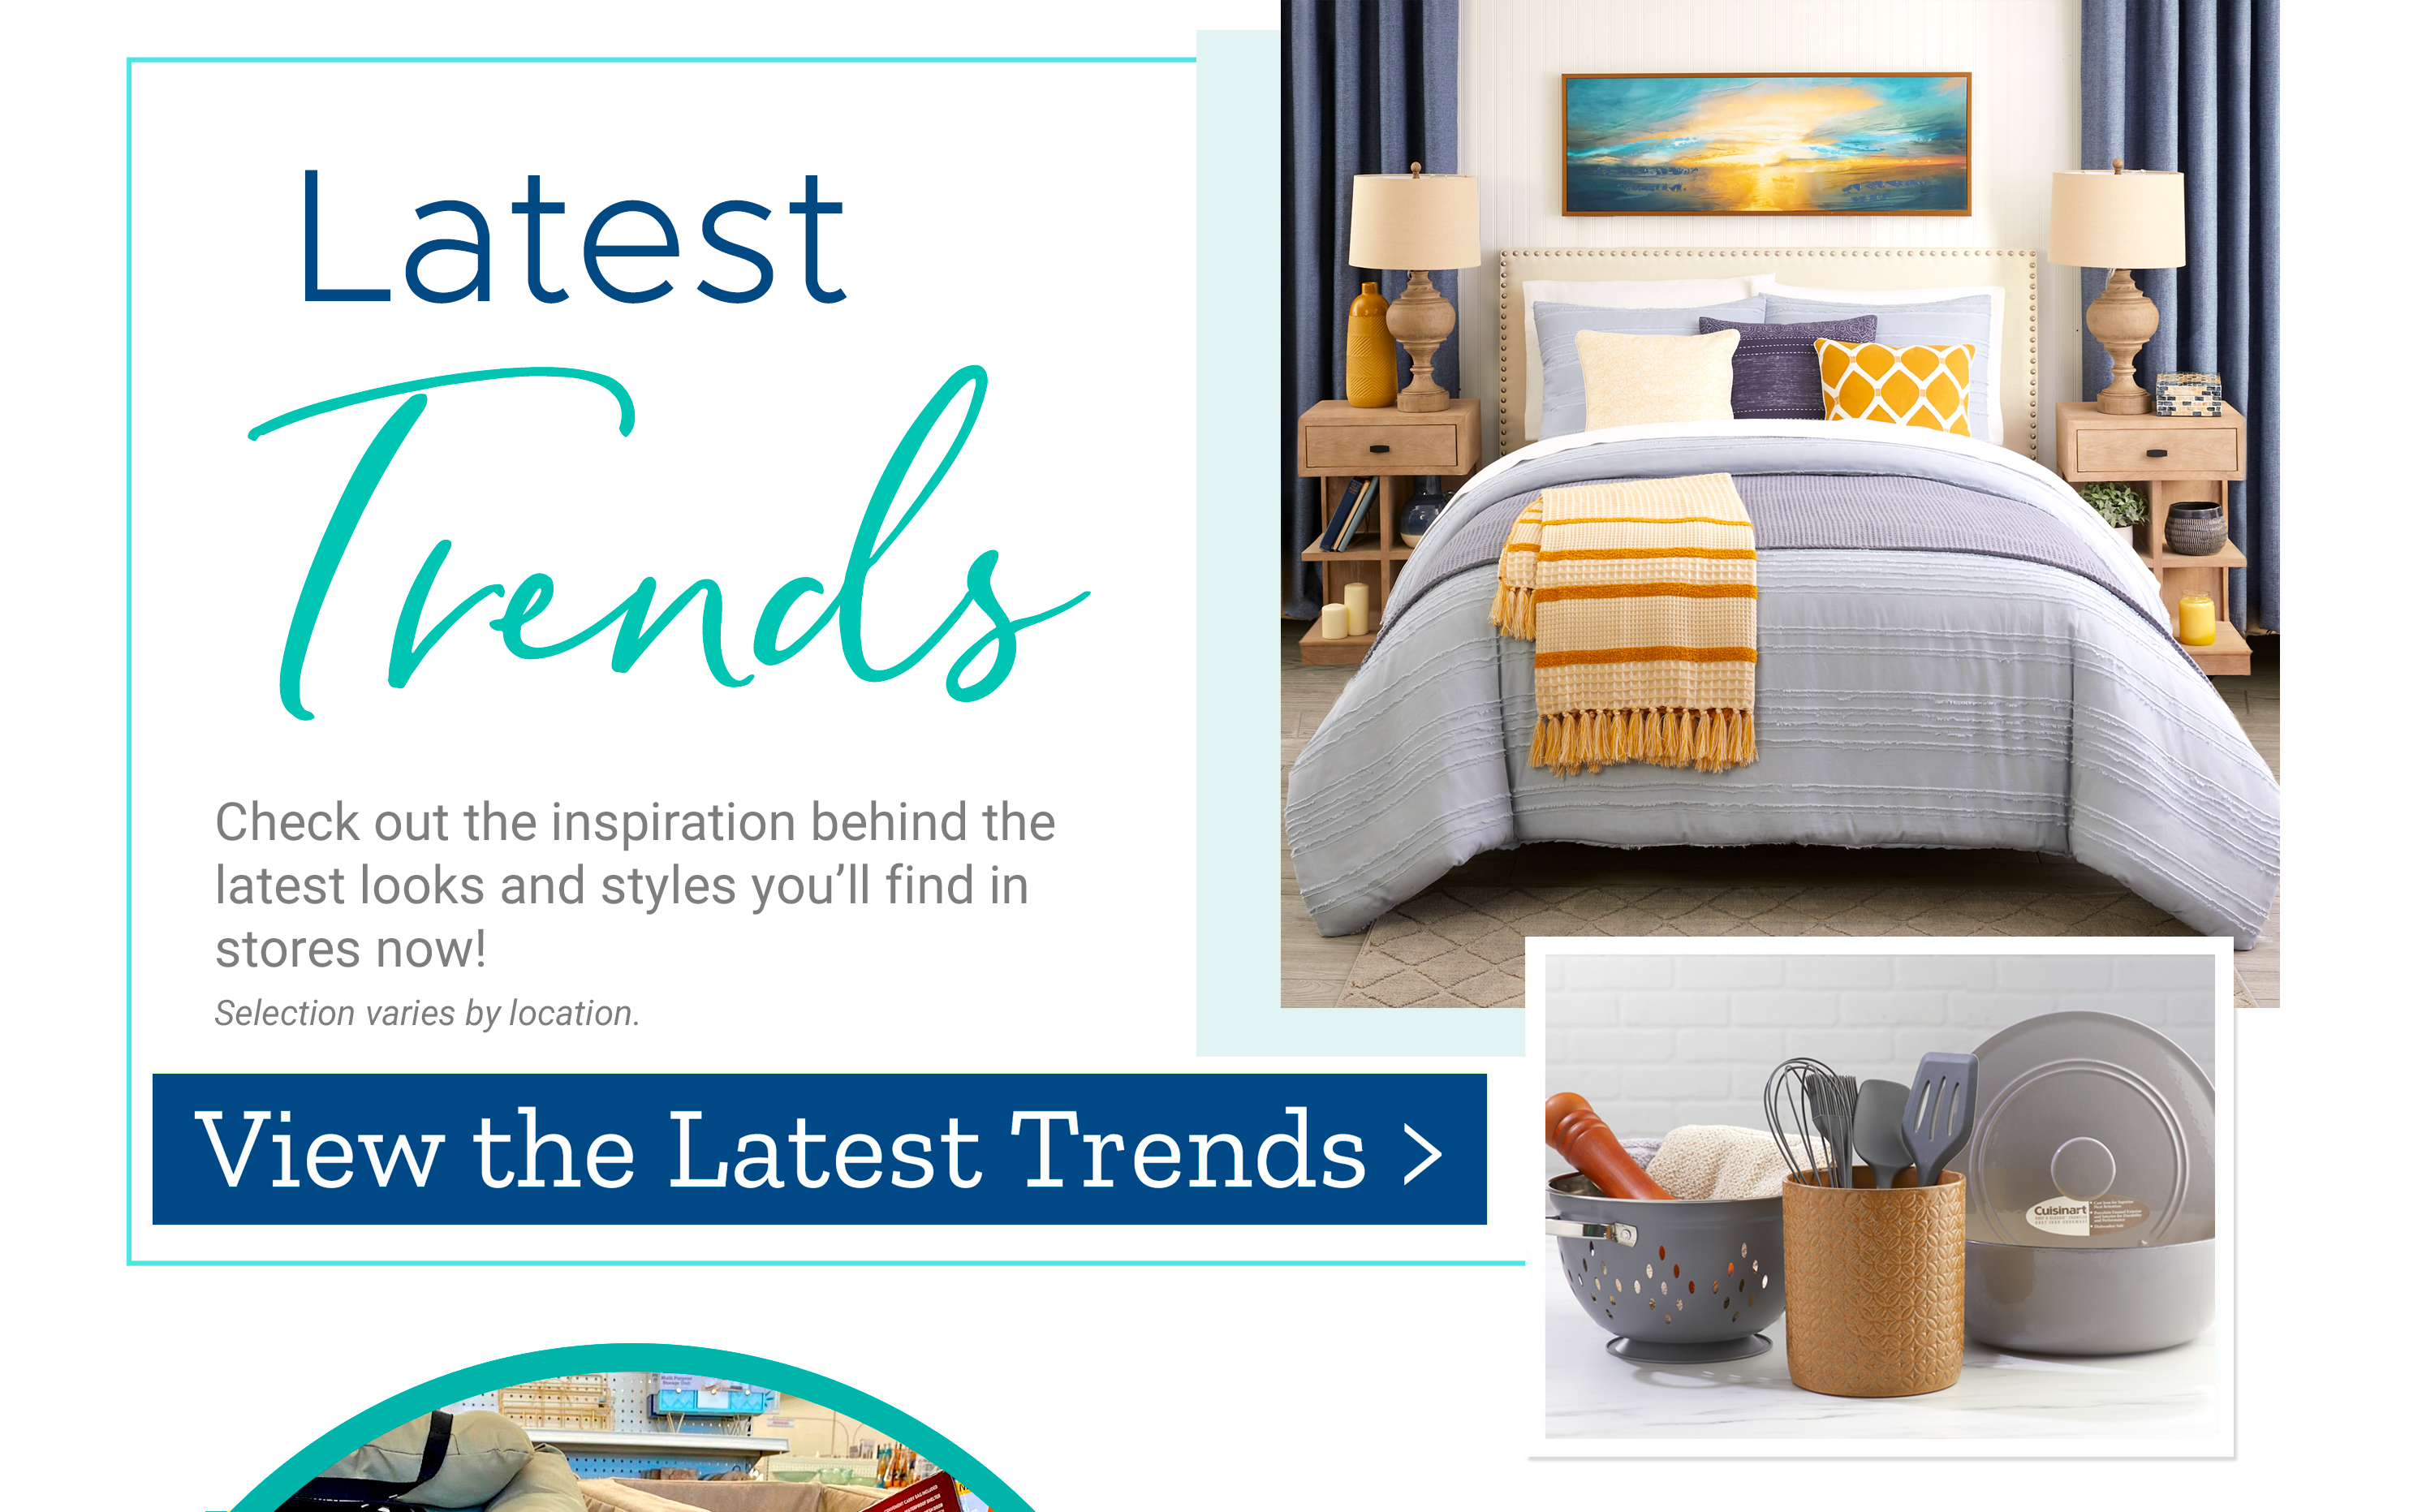 Latest Trends